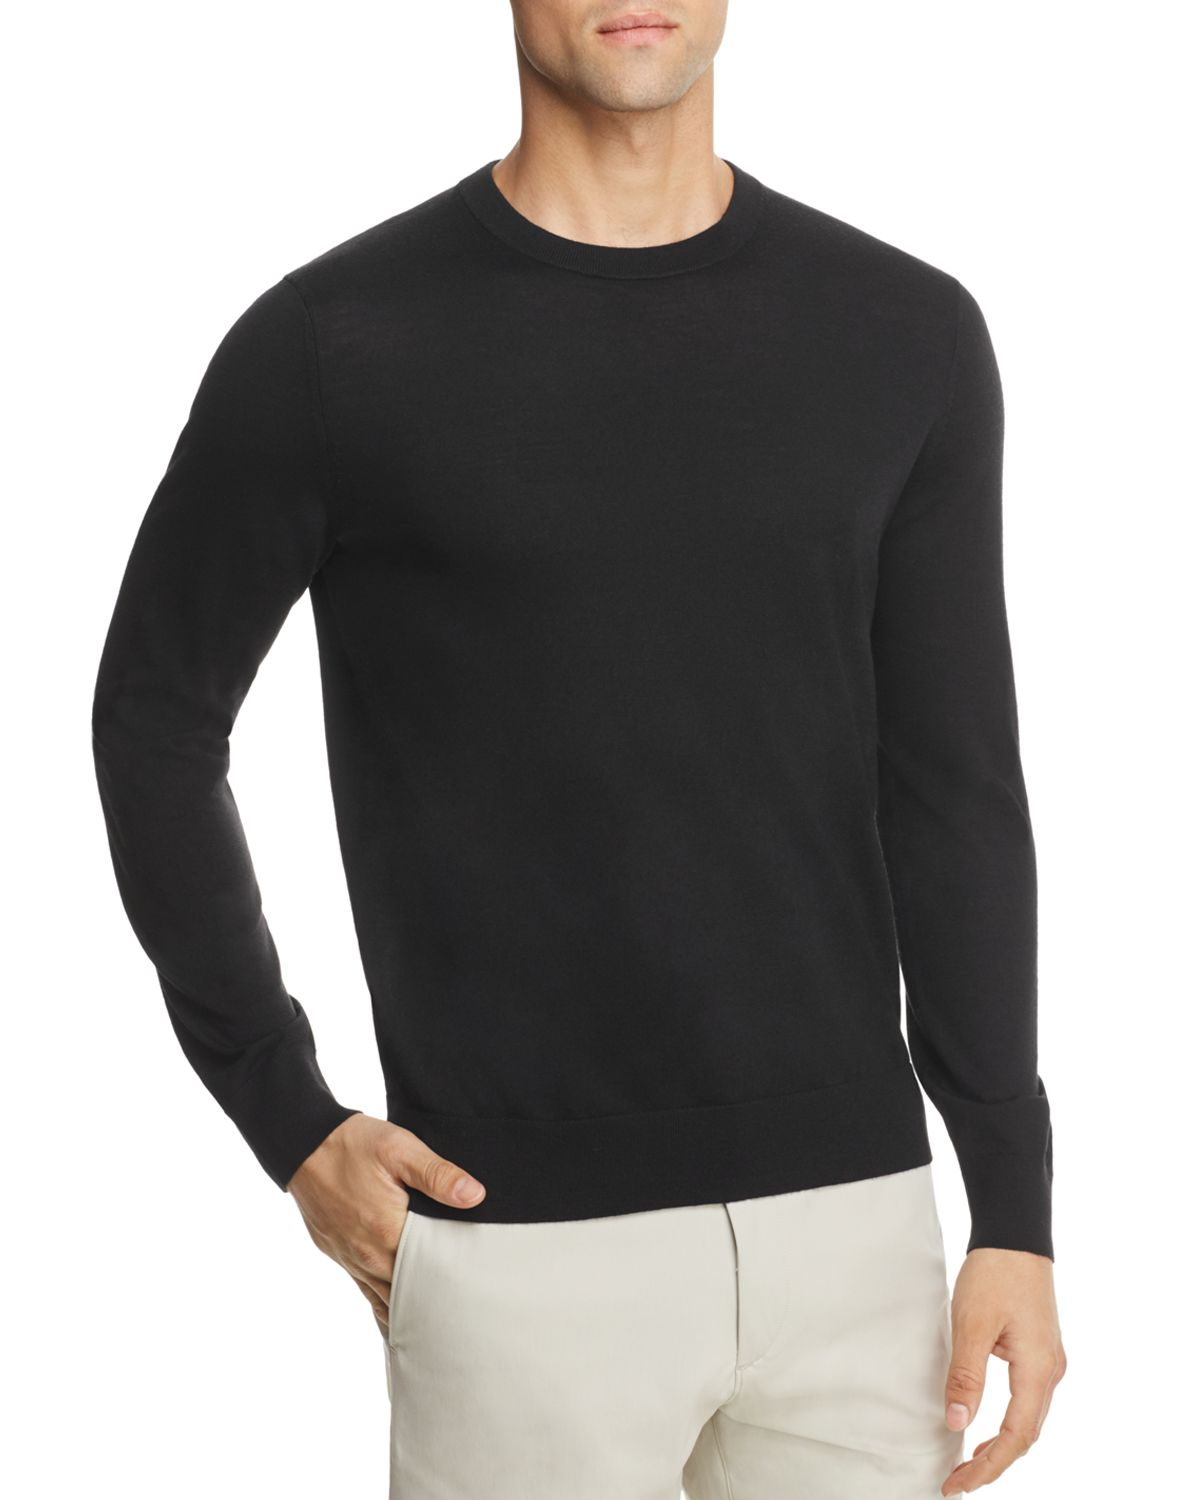 Riland New Sovereign Slim Fit Crewneck Sweater by Theory